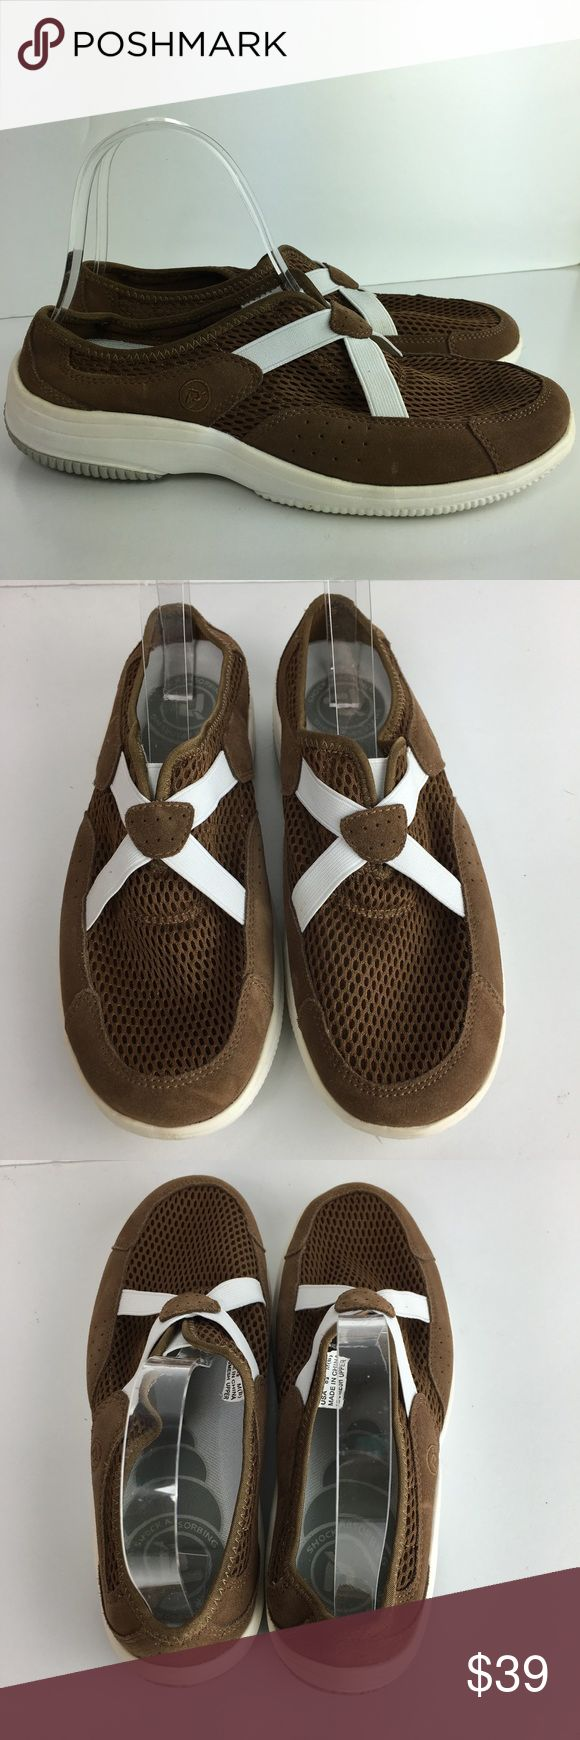 Propet Flats Suede Walking Shock Absorbing Slip On Propet Womans Flats Size 8.5 Brown Suede Mesh Walking Shock Absorbing Slip On Heel 1 3/4 B3 Propet Shoes Athletic Shoes